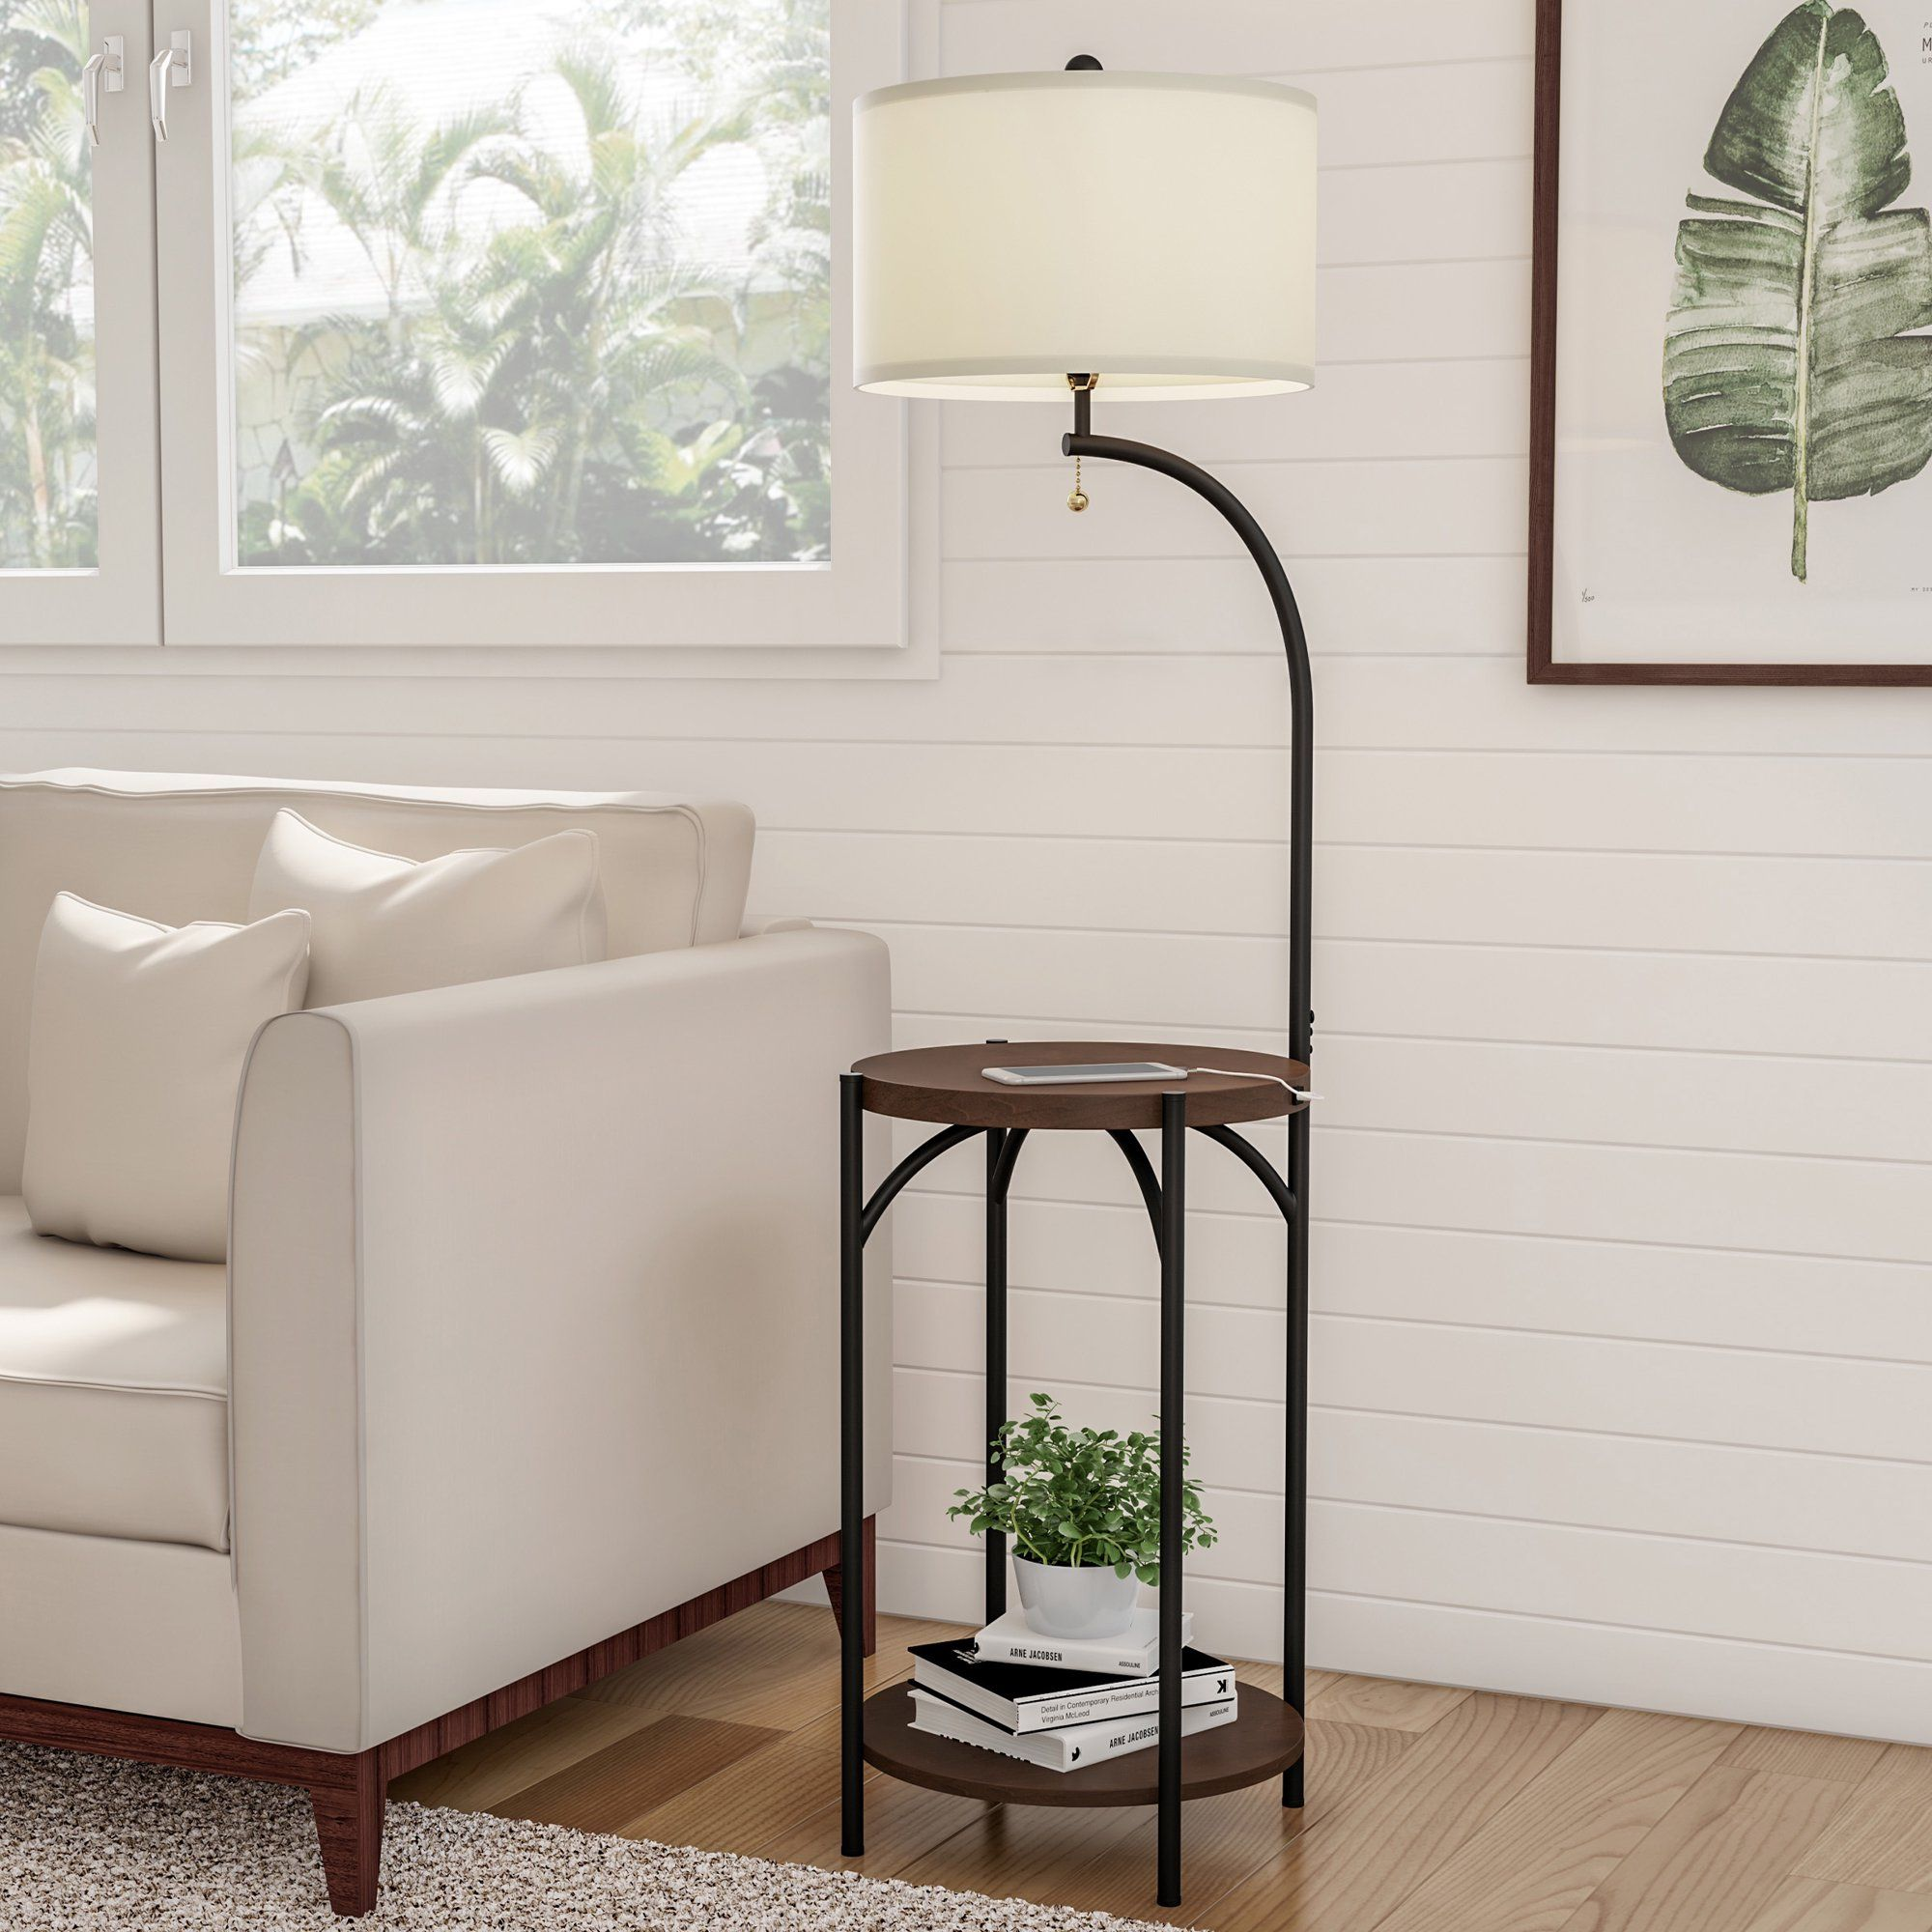 Floor Lamp End Table Modern Rustic Side Table With Drum Shaped Shade Led Light Bulb Included Usb Charging Port And Storage Shelf By Lavish Home Walmart Com White Floor Lamp Rustic